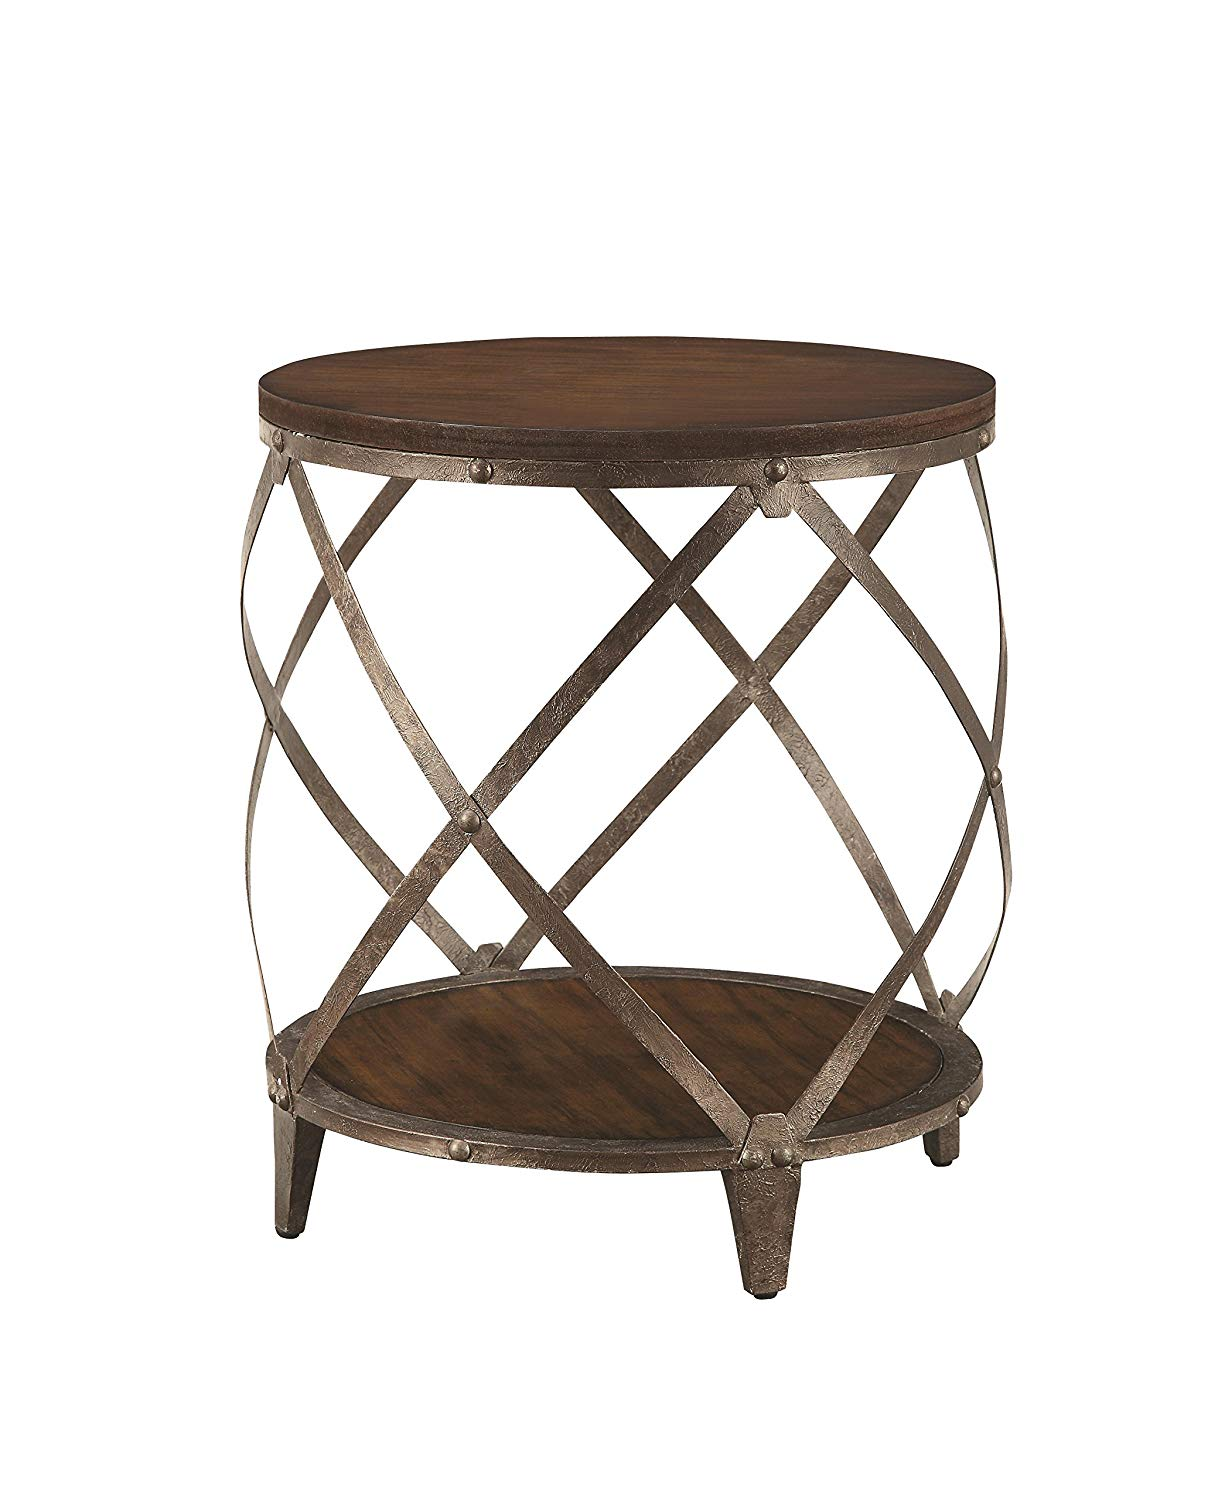 metal accent table with drum shape brown kitchen dining red wood ballard designs outdoor cushions thai rain west elm white chair corner inch round tablecloth small drop leaf set